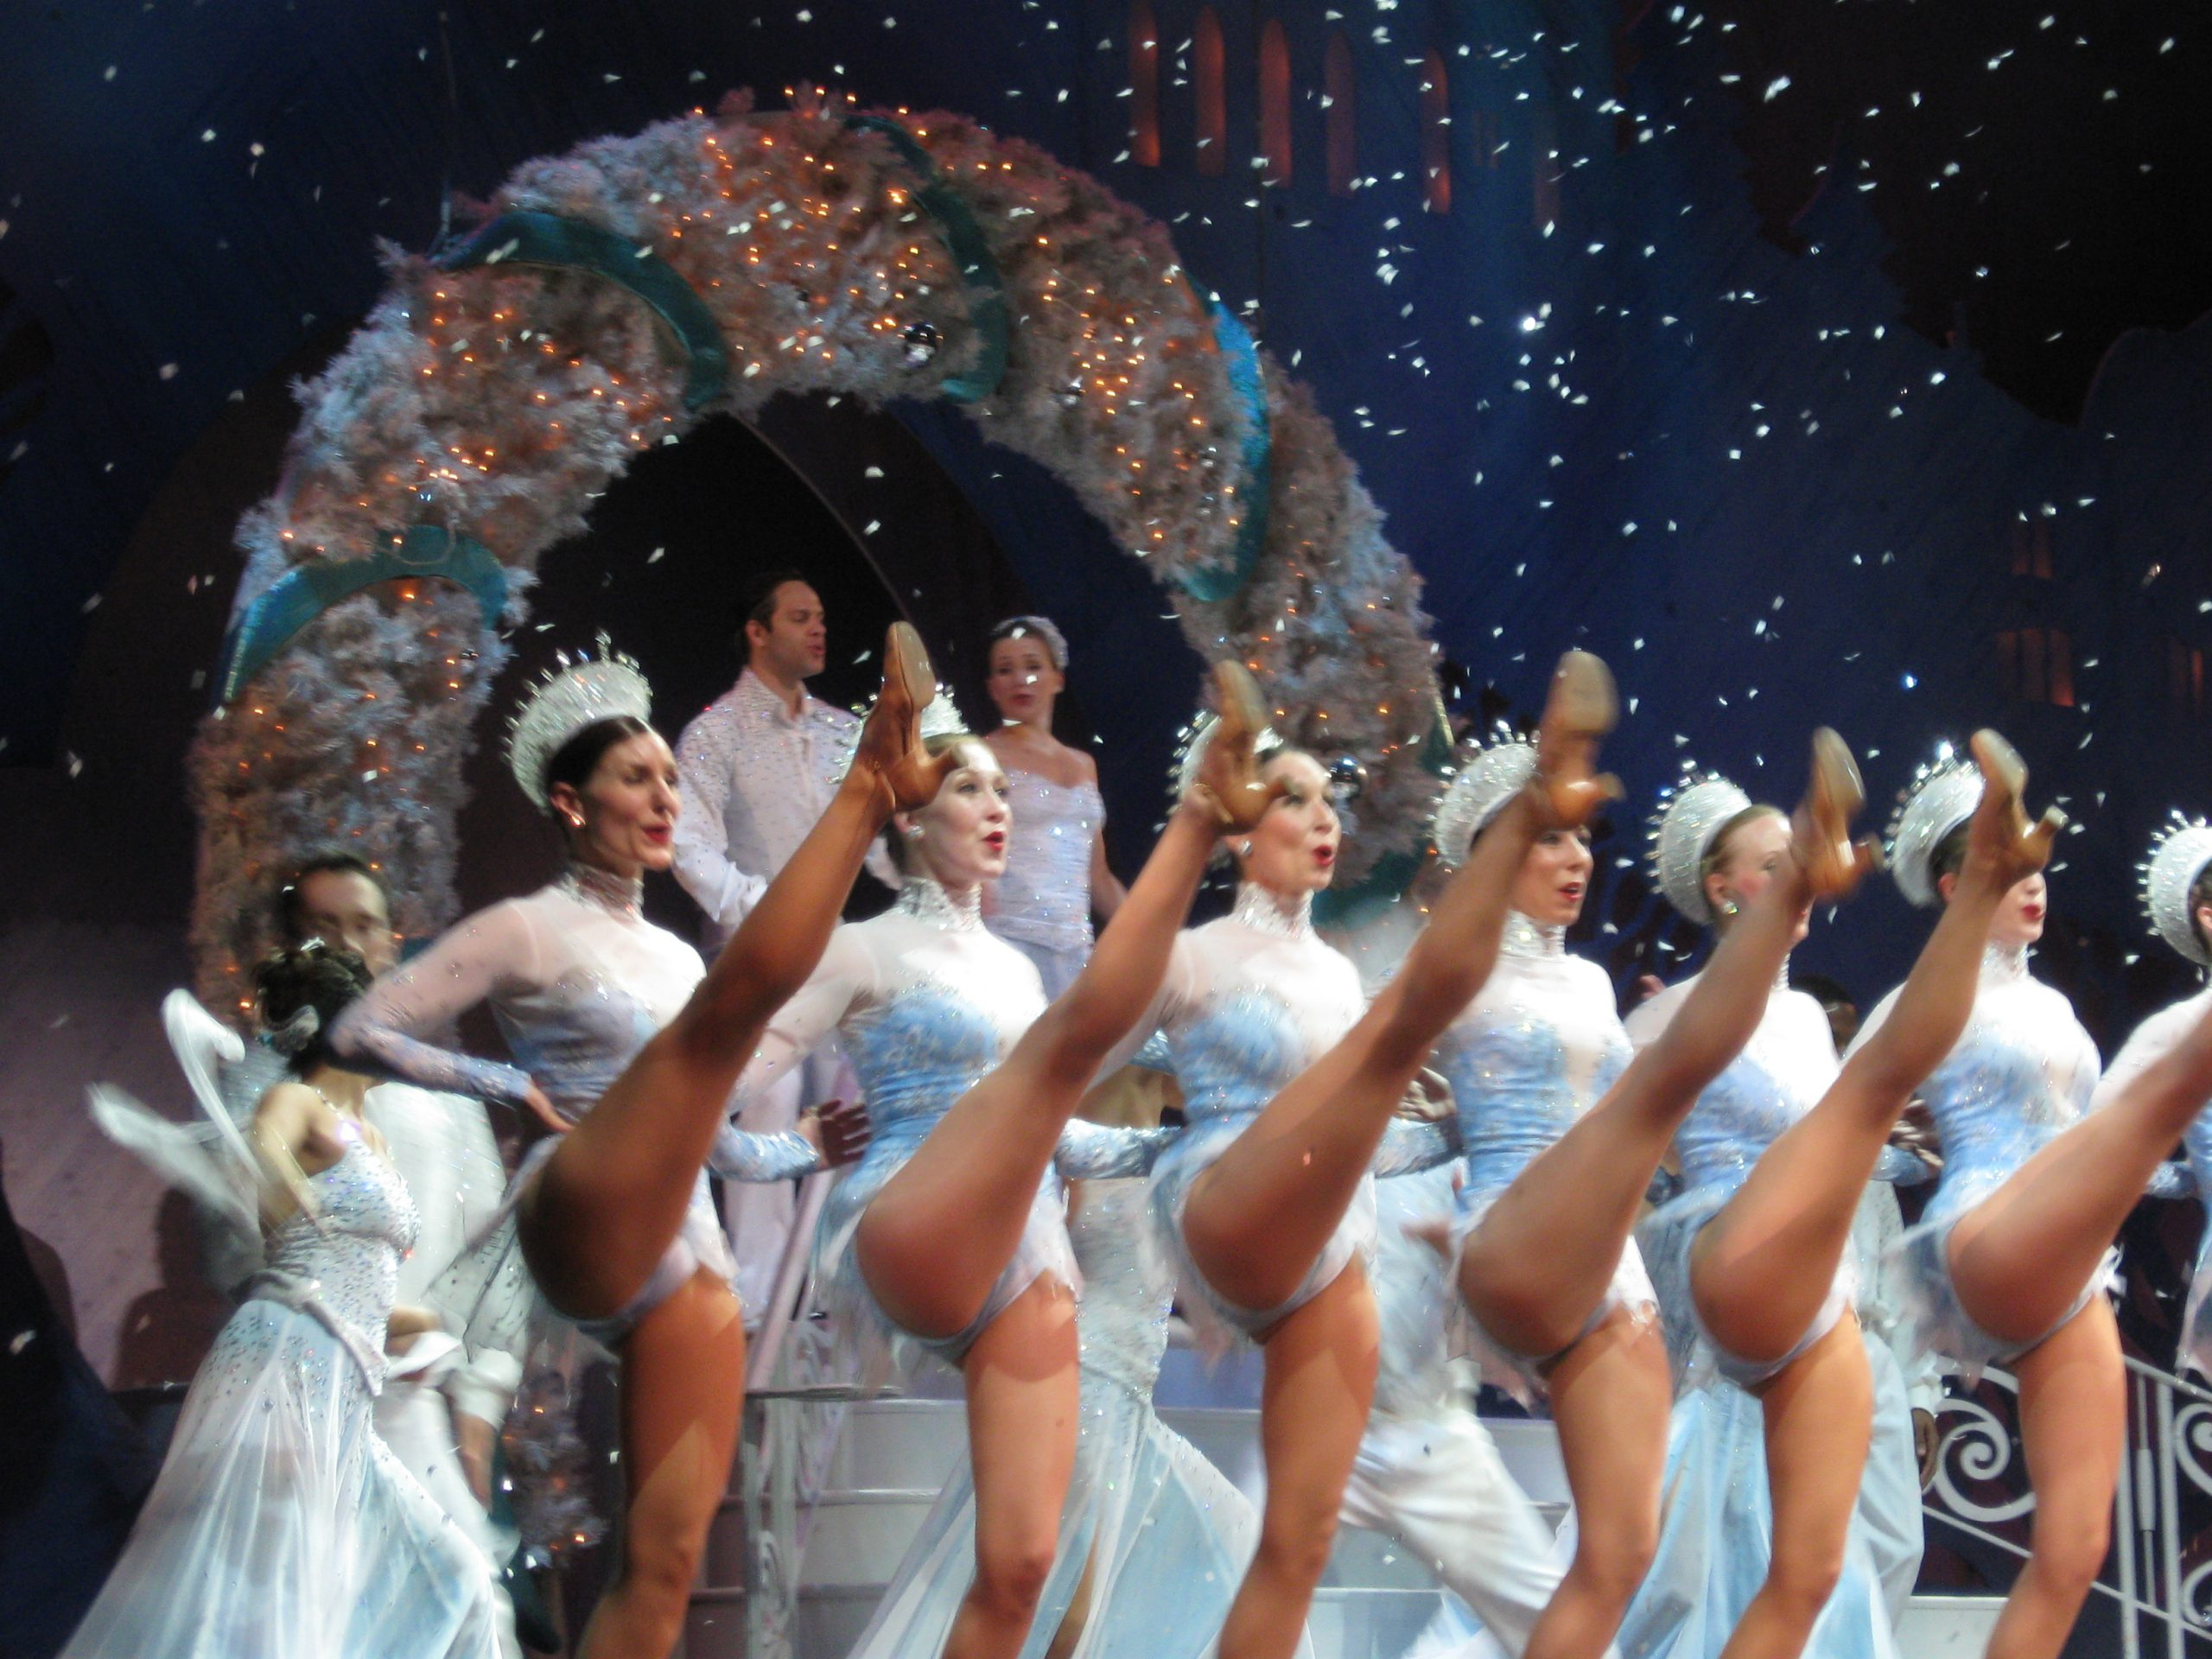 From Kickline to Consciousness: A Radio City Rockette Experience